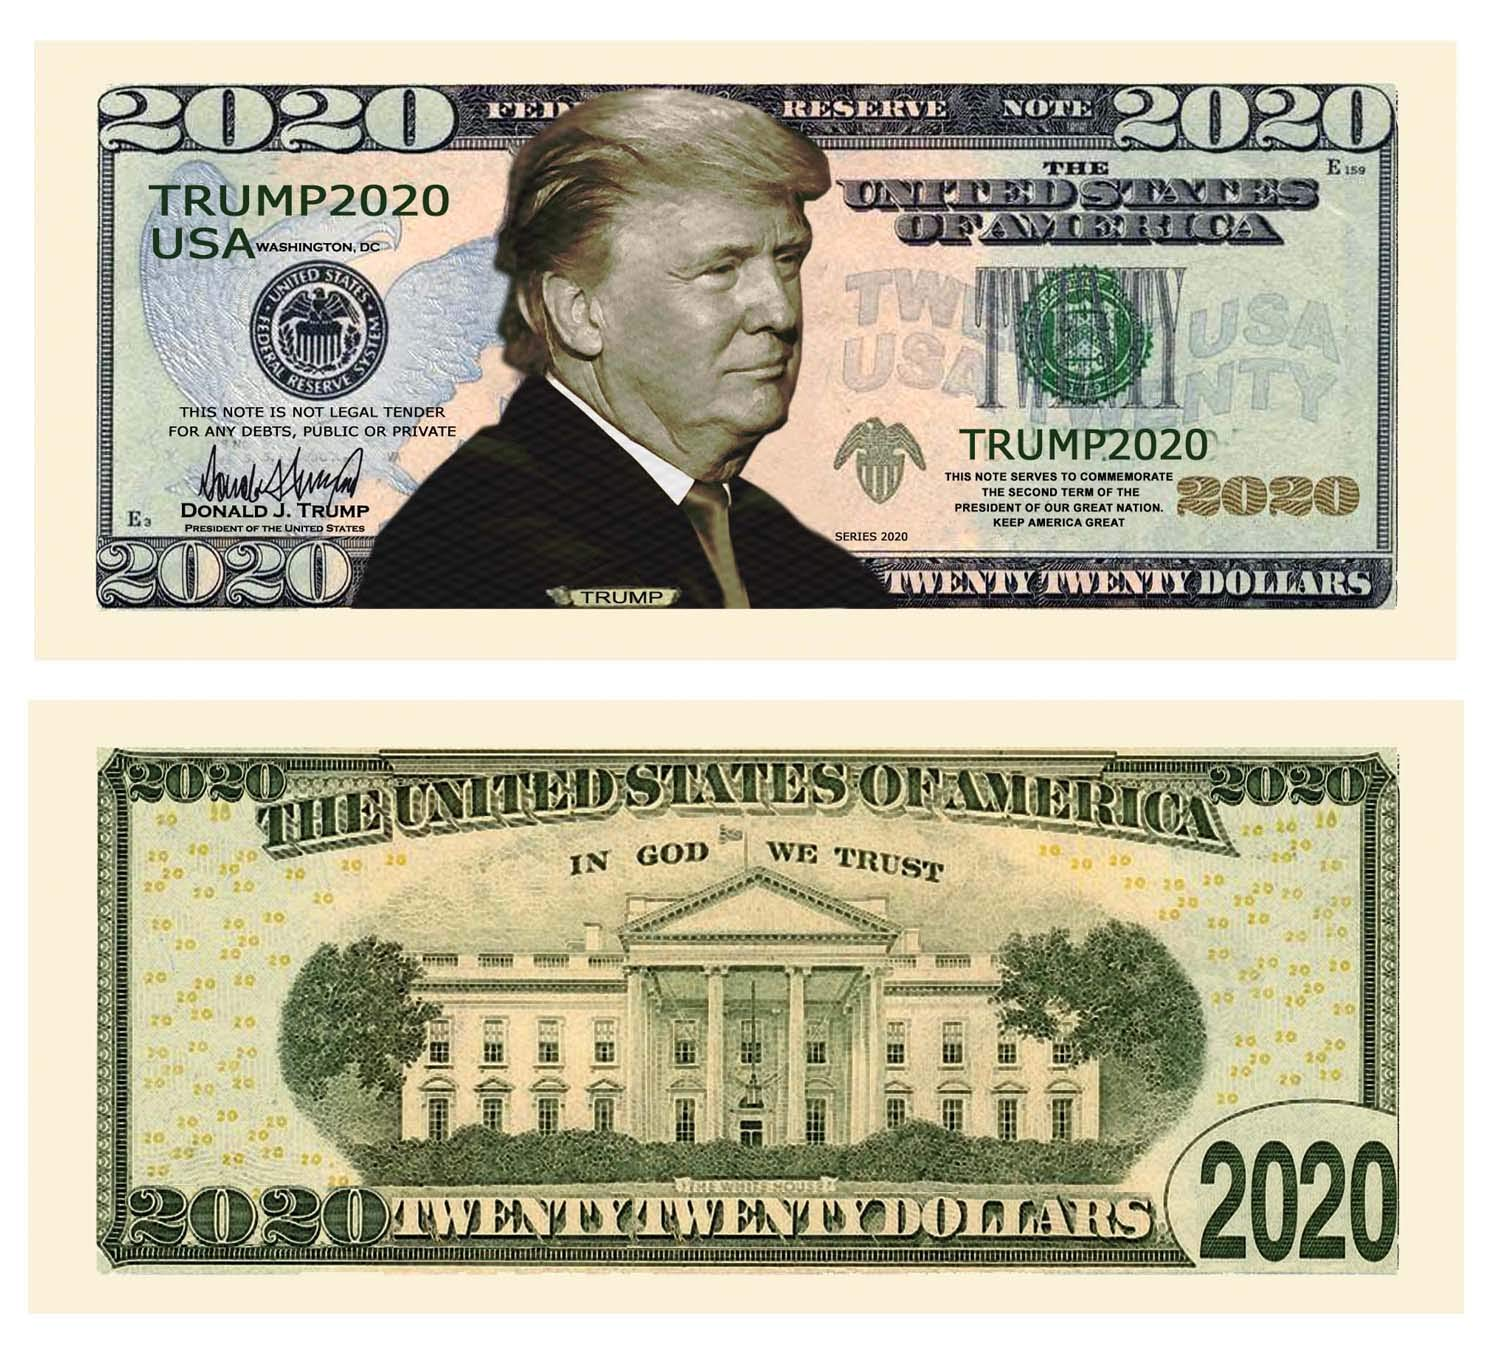 Universal Affect - Donald Trump 2020 Re-Election Presidential Dollar Bill - Each Bill Comes in a Deluxe Semi-Rigid Currency Holder - Made in The USA (25) by Universal Affect